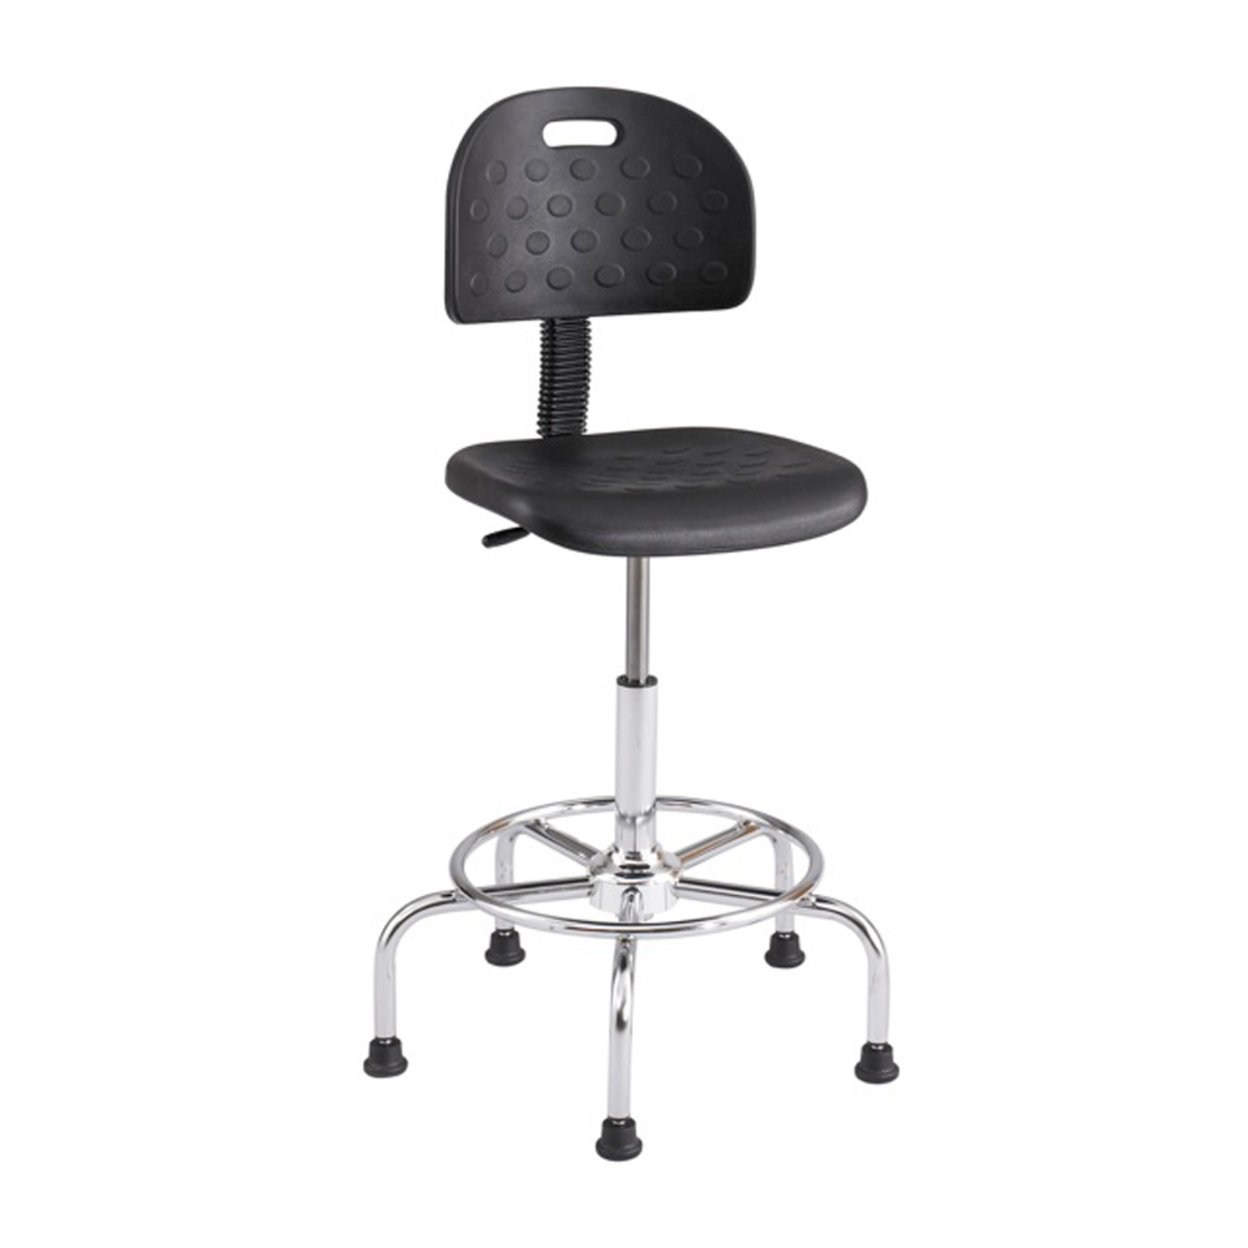 Safco Home Office WorkFit Economy Industrial Chair